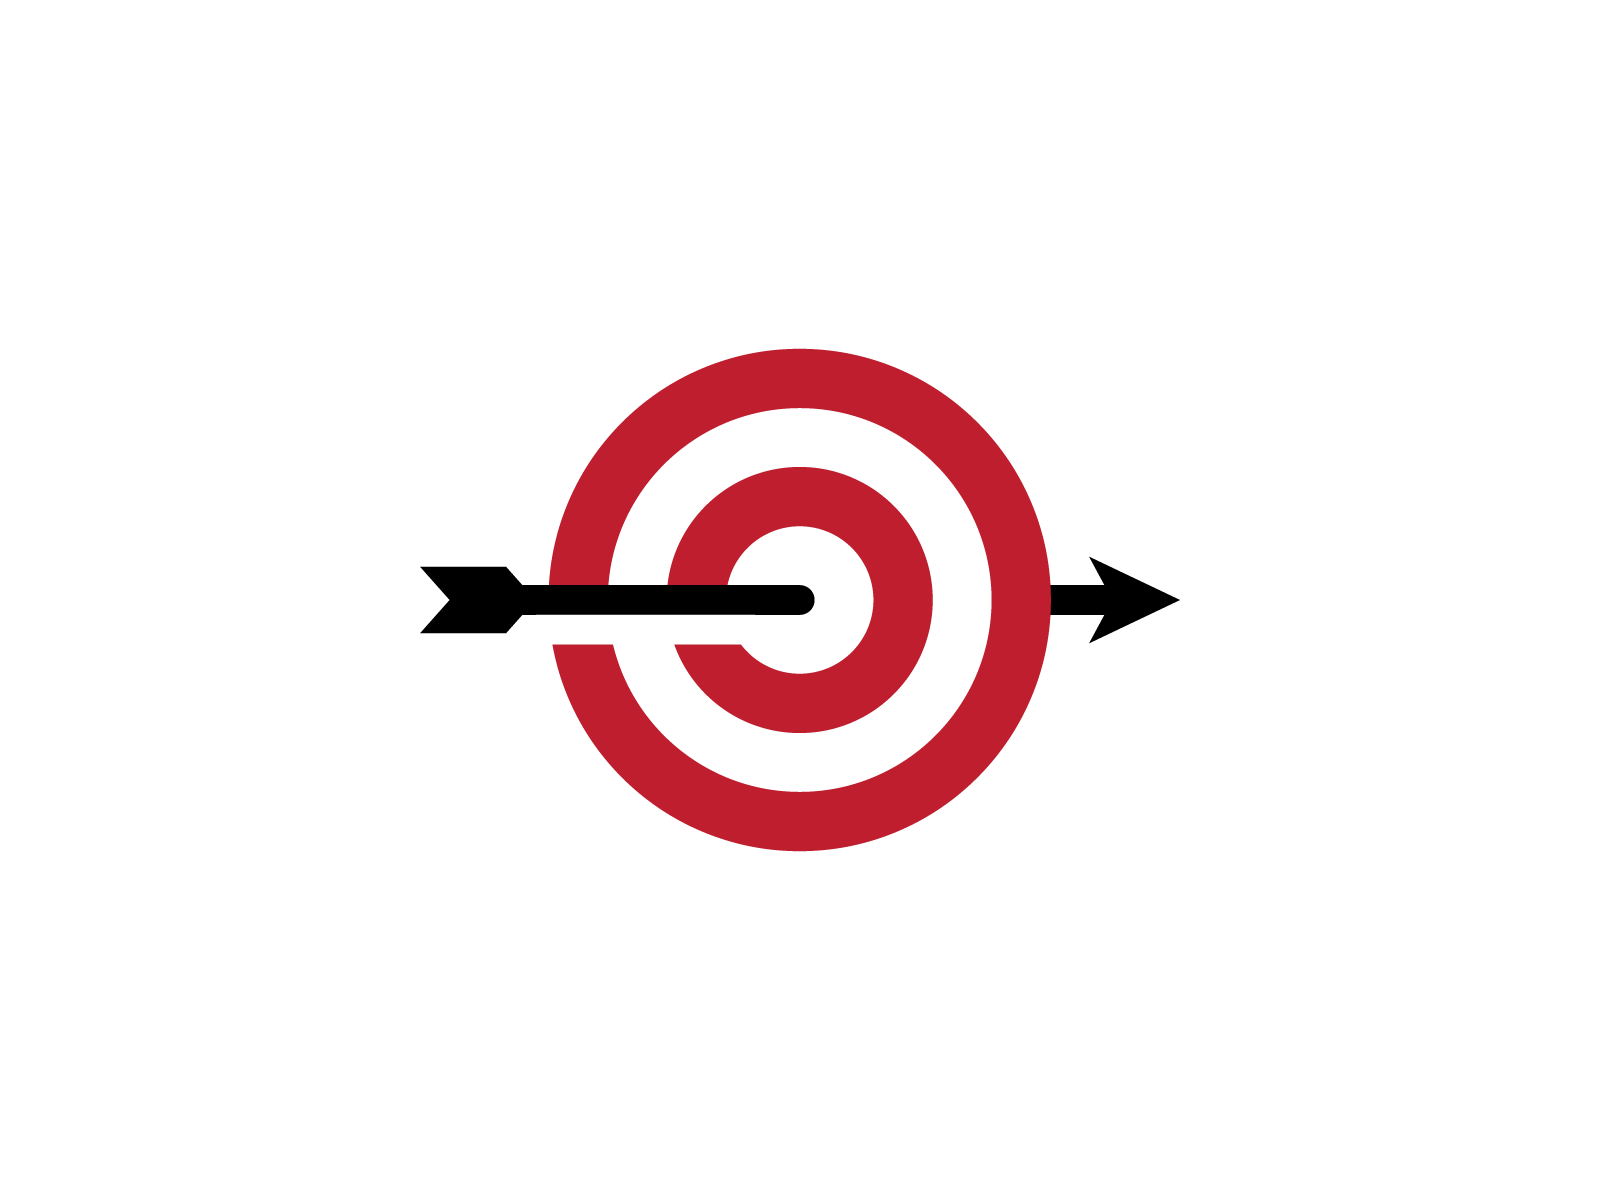 Aim Arrow | Instagram likes and followers, Archery logo, Aim